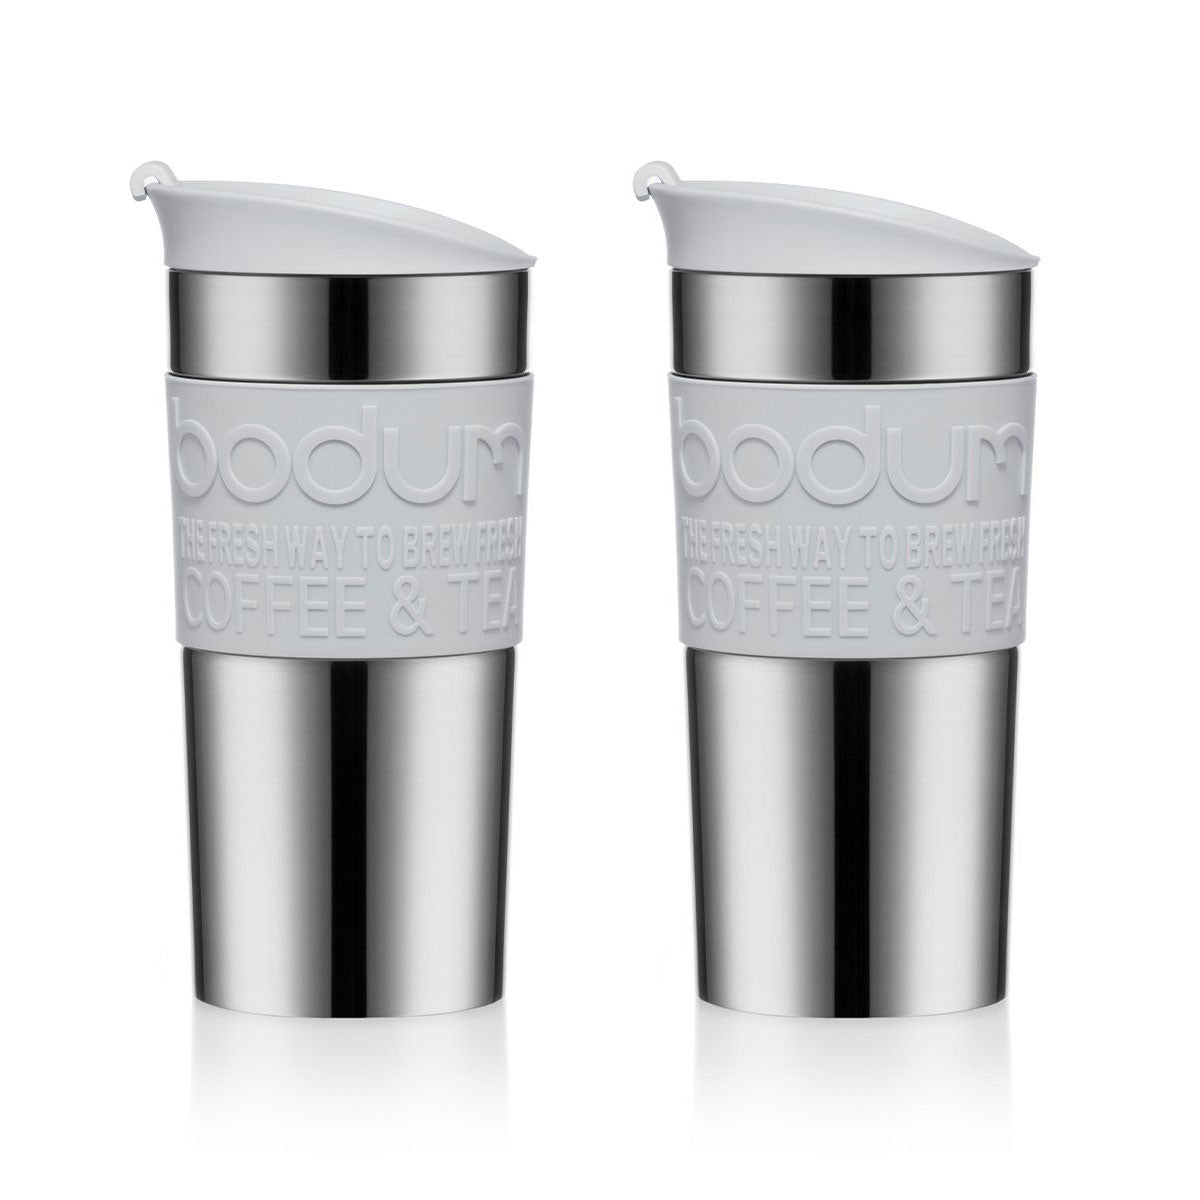 Bodum Travel Mug Stainless Steel 0.35L - Shadow Grey - Double Pack